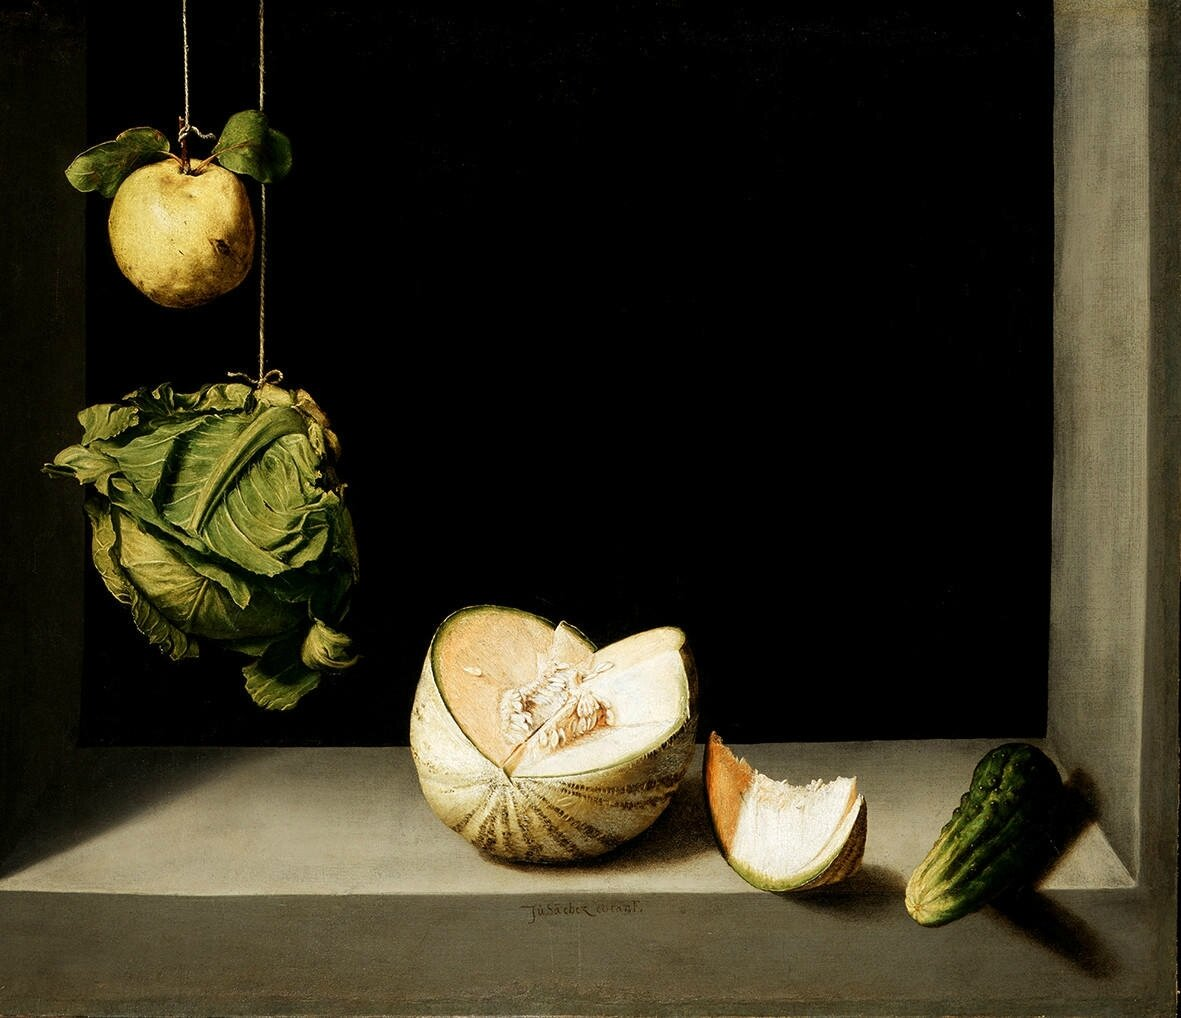 Exhibition offers a glimpse into the variety and opulence of Spanish still life paintings